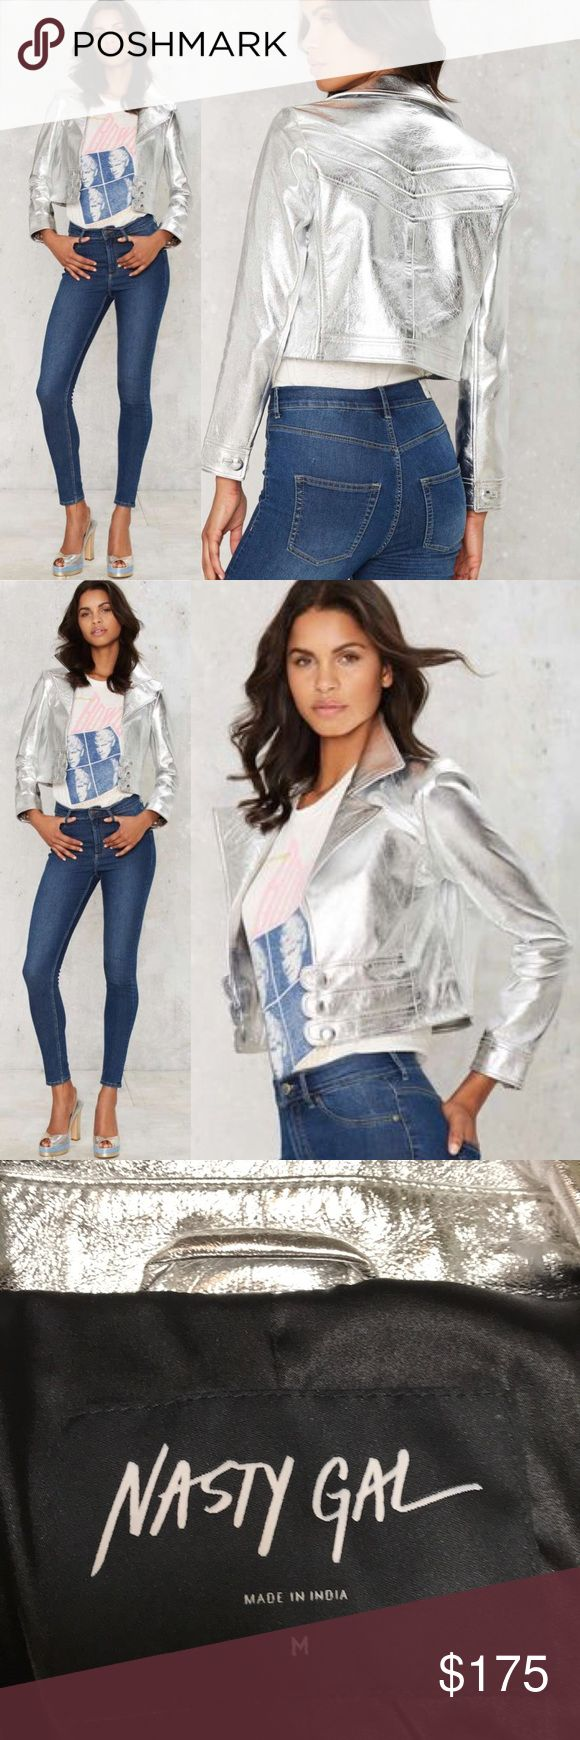 Nasty Gal Jerry Metallic Leather jacket Look fresh out of the Factory. The Jerry Jacket is made in metallic silver leather and features a notched collar, leather panels with button closures at front, and button at sleeves. Fully lined. Pair it with the matching Jerry Skirt for full effect or wear it with wide leg pants for an equally amazing look. By Nasty Gal.. Leather. Runs true to size. Dry clean only. Imported. Sold out at Nasty Gal. Brand new boutique item Nasty Gal Jackets & Coats